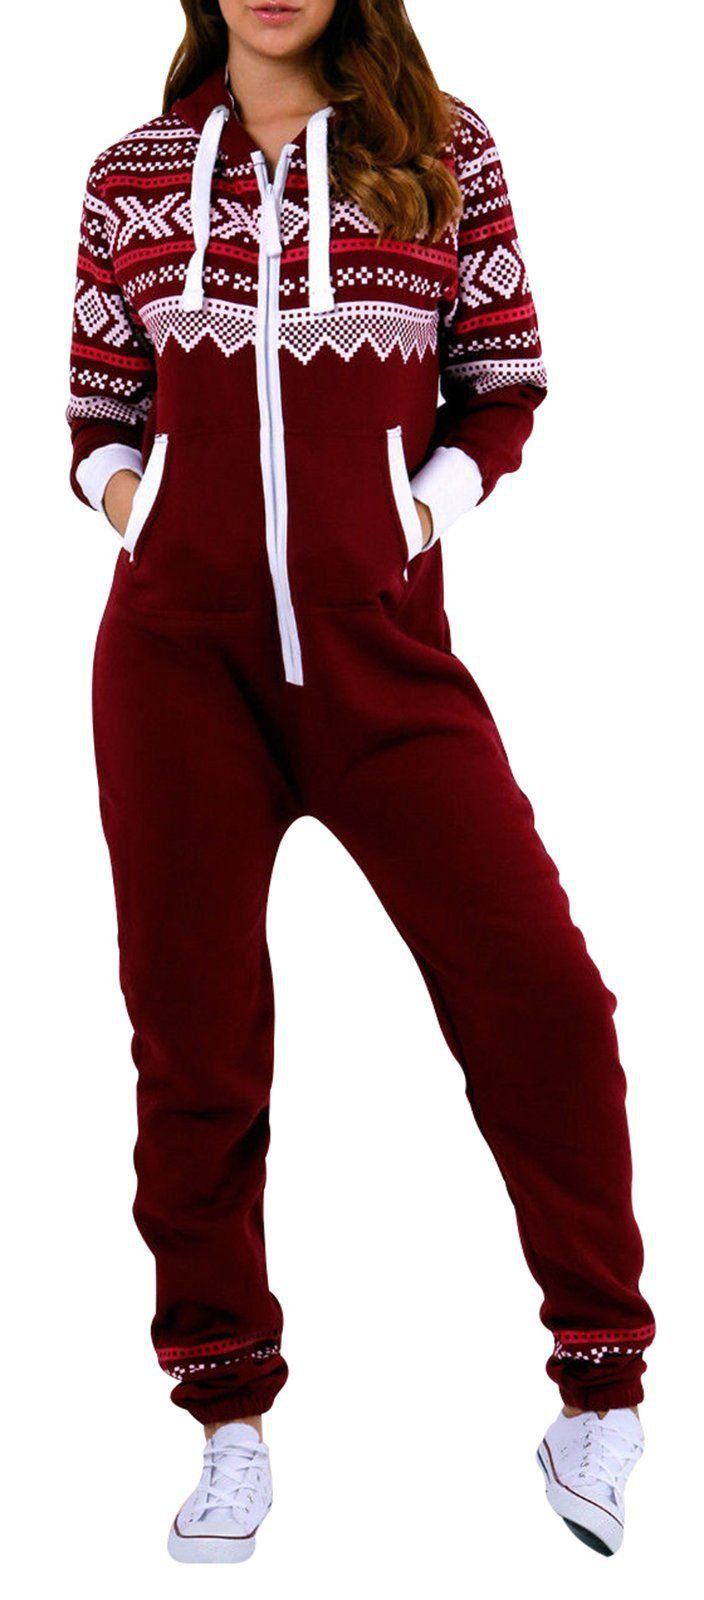 Pin for Later: The Essential Cold-Weather Holiday Gift Guide Women's Onesie SkylineWears Women's Onesie ($31-$50, originally $70)